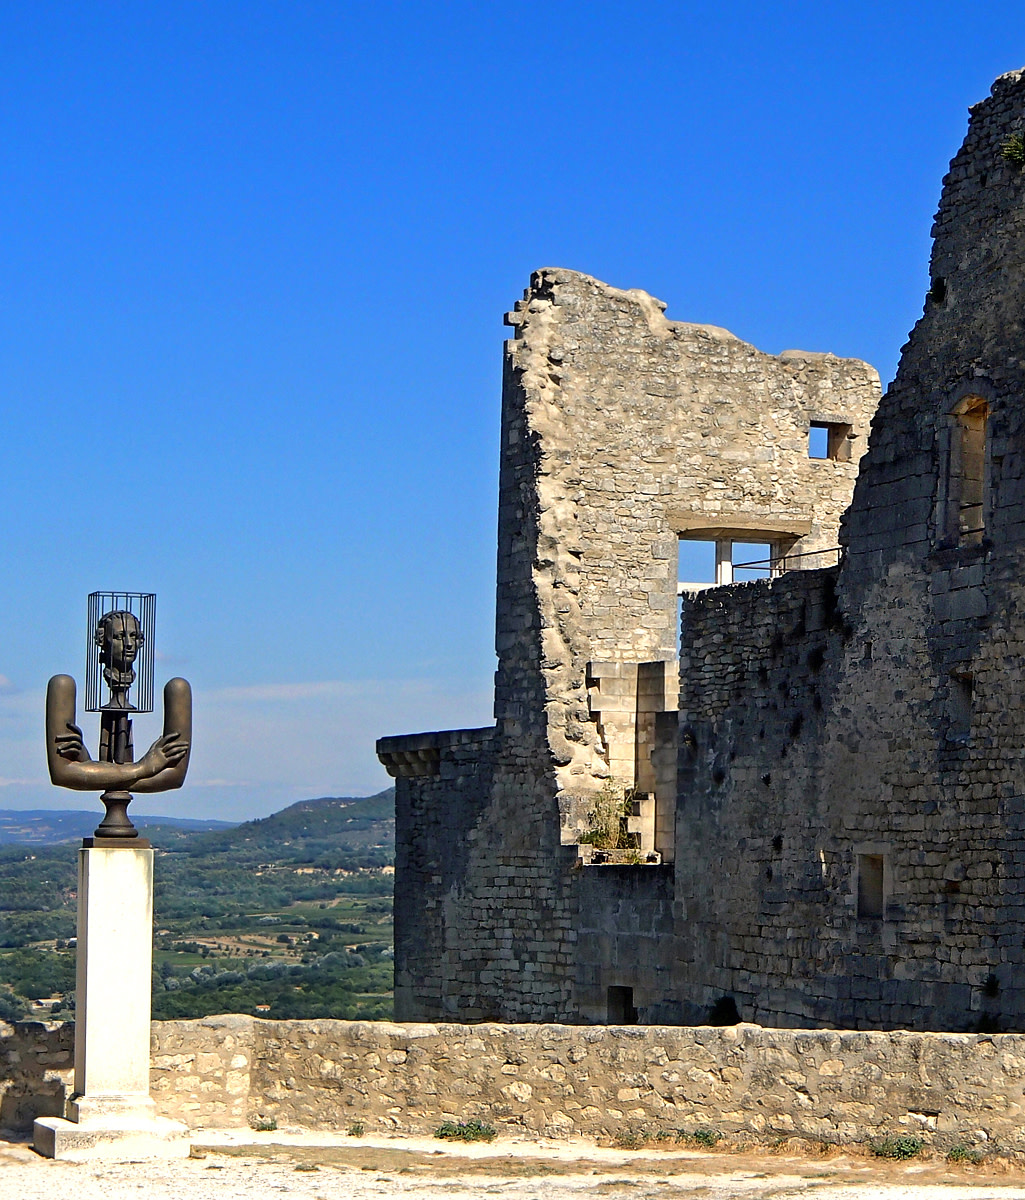 Modern sculpture of the Marquis de Sade stands guard outside his castle in Lacoste.